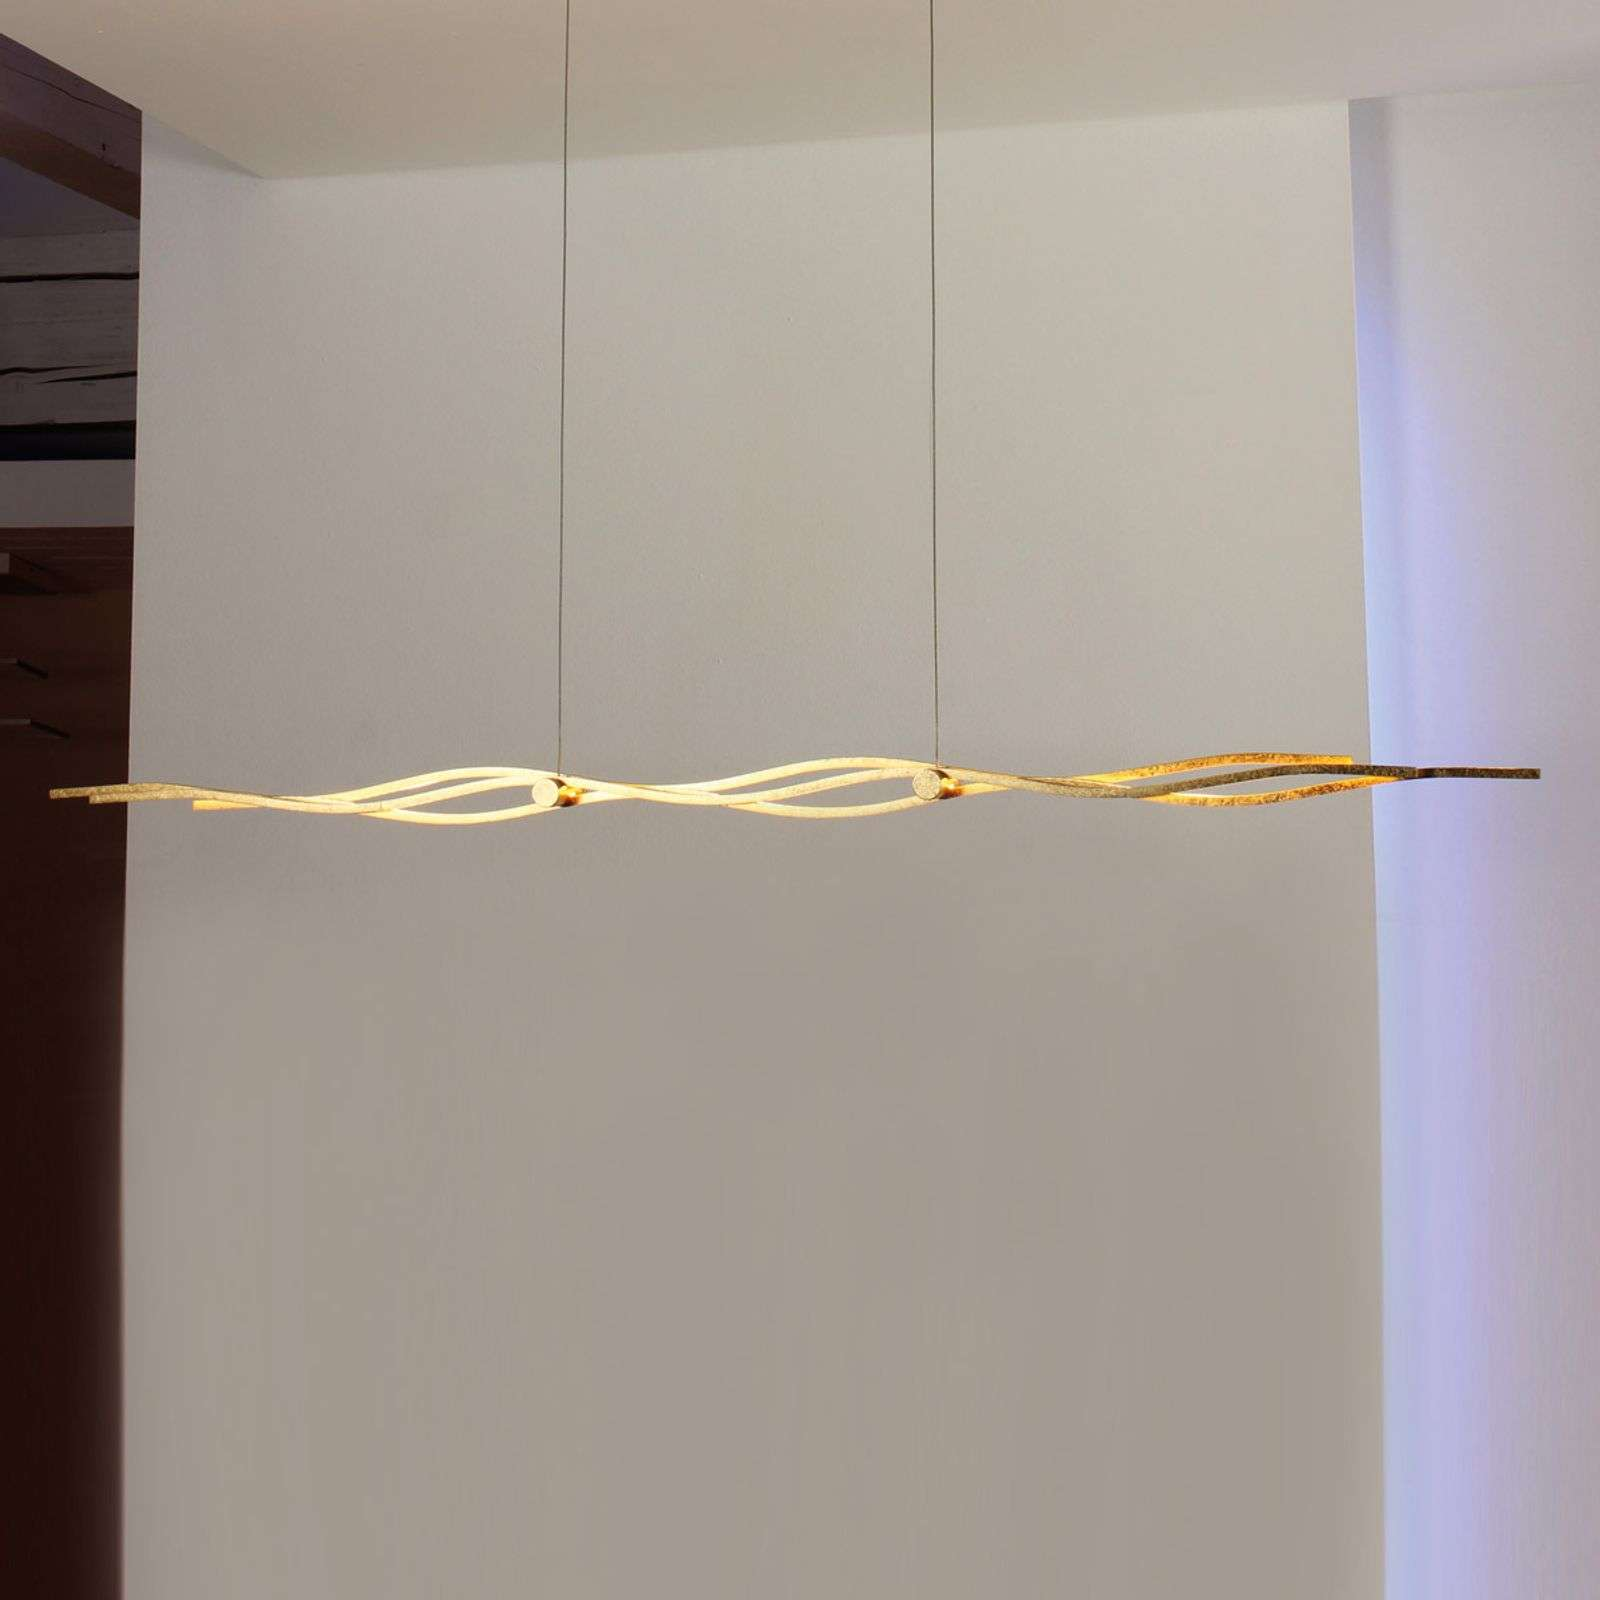 Suspension LED Silk feuilles d'or 120 cm